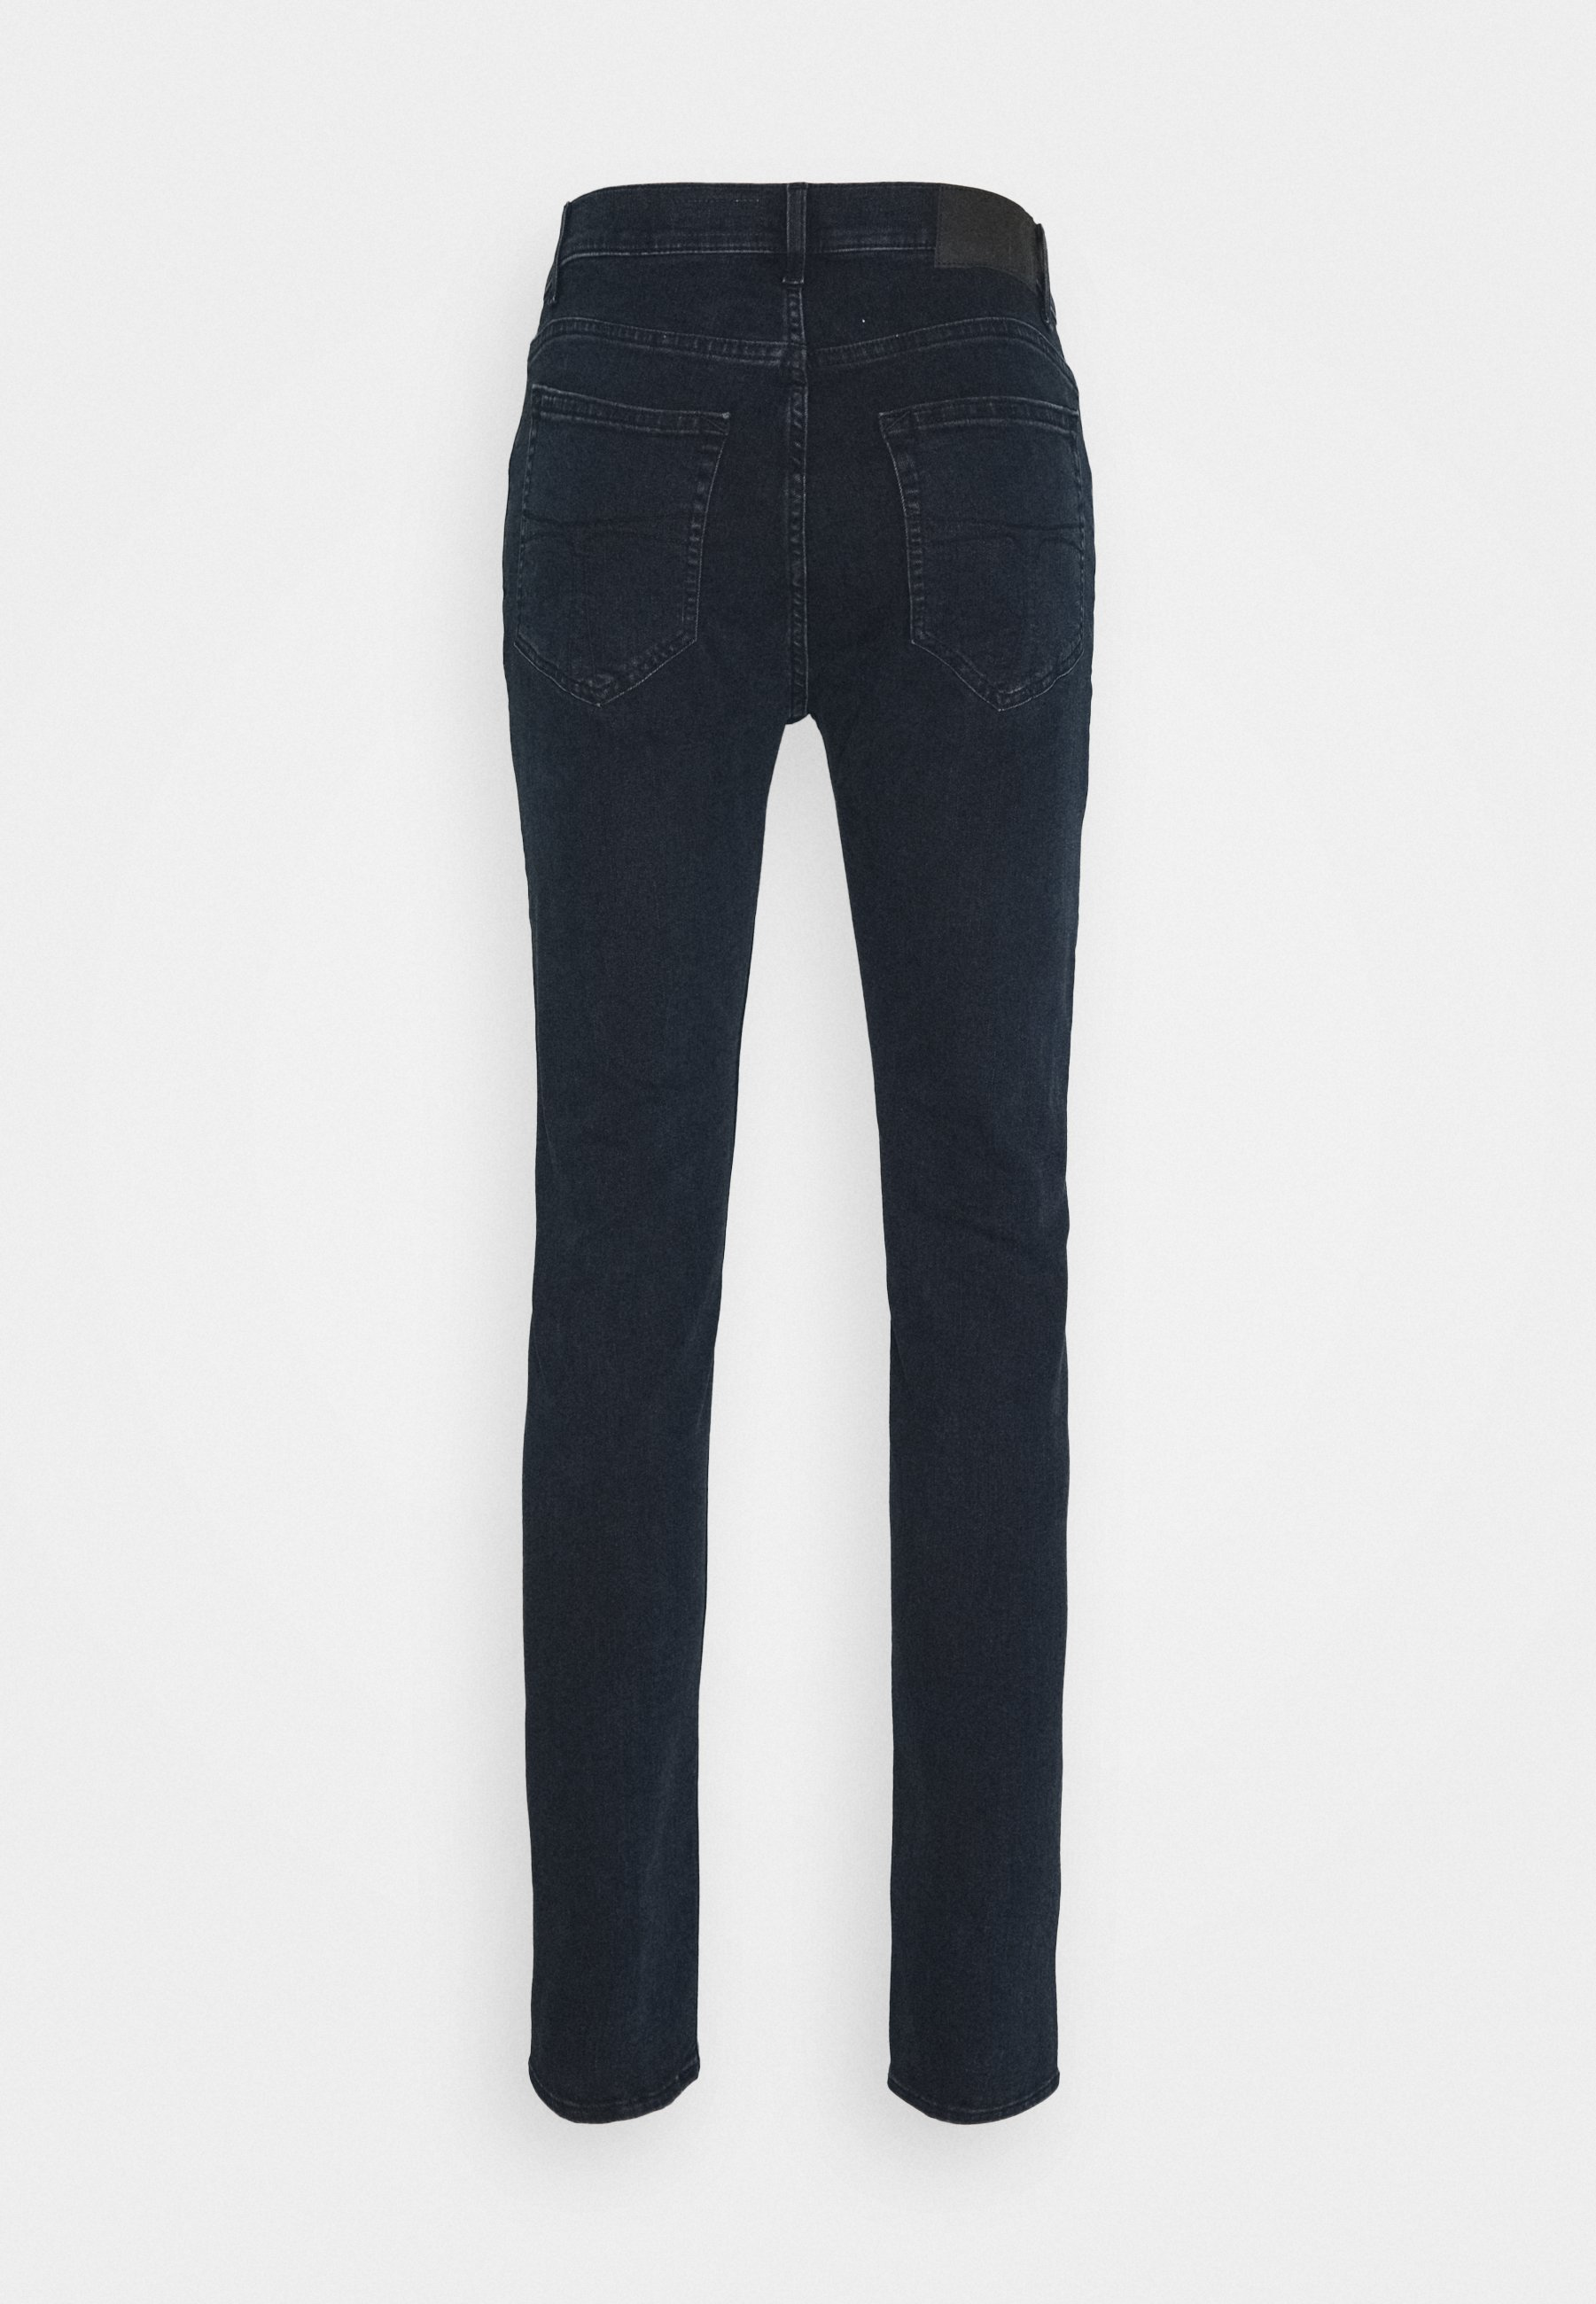 Tiger Of Sweden Jeans Evolve - Slim Fit Laval/mørkeblå Denim